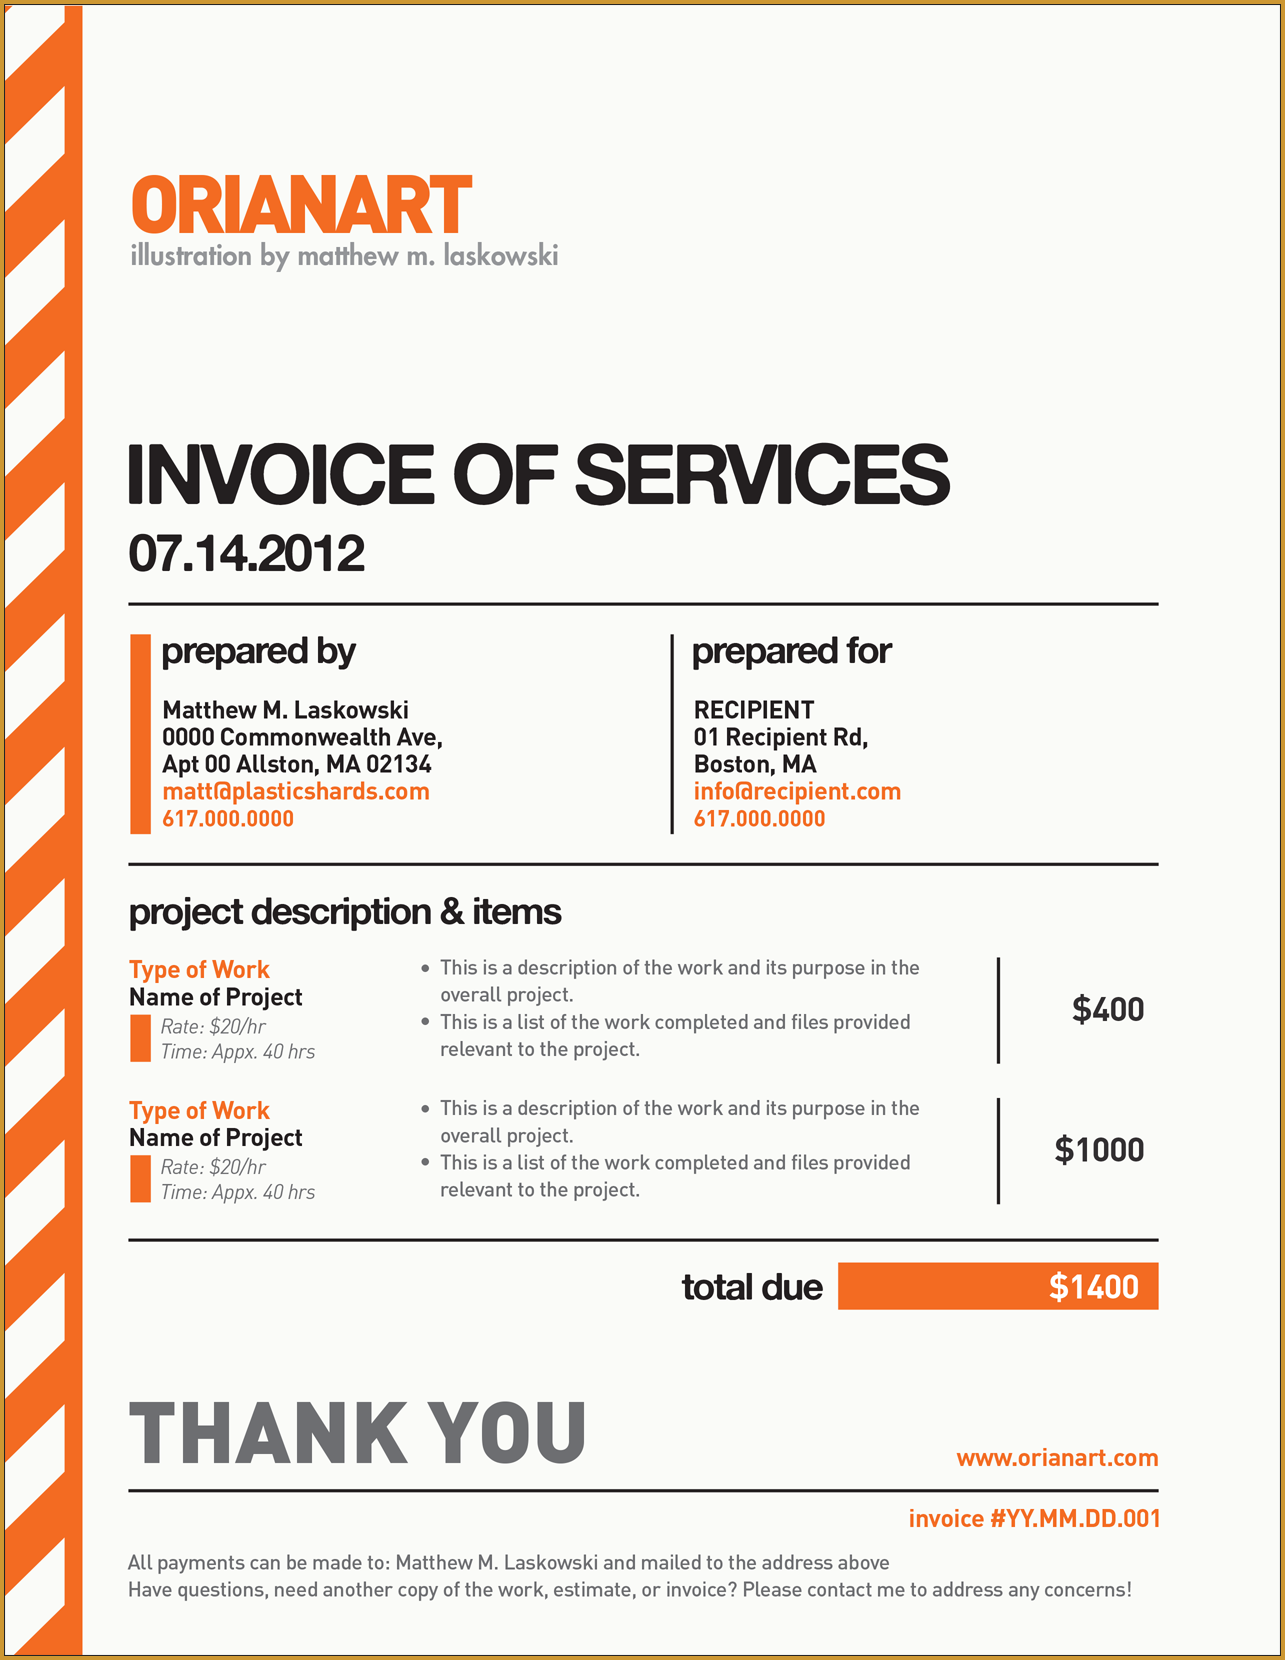 Freelance Artist Invoice Template Artist Invoice Samples Spreadsheet Templates for Busines Spreadsheet Templates for Busines Artist Invoice Template Invoice Template Free 2016